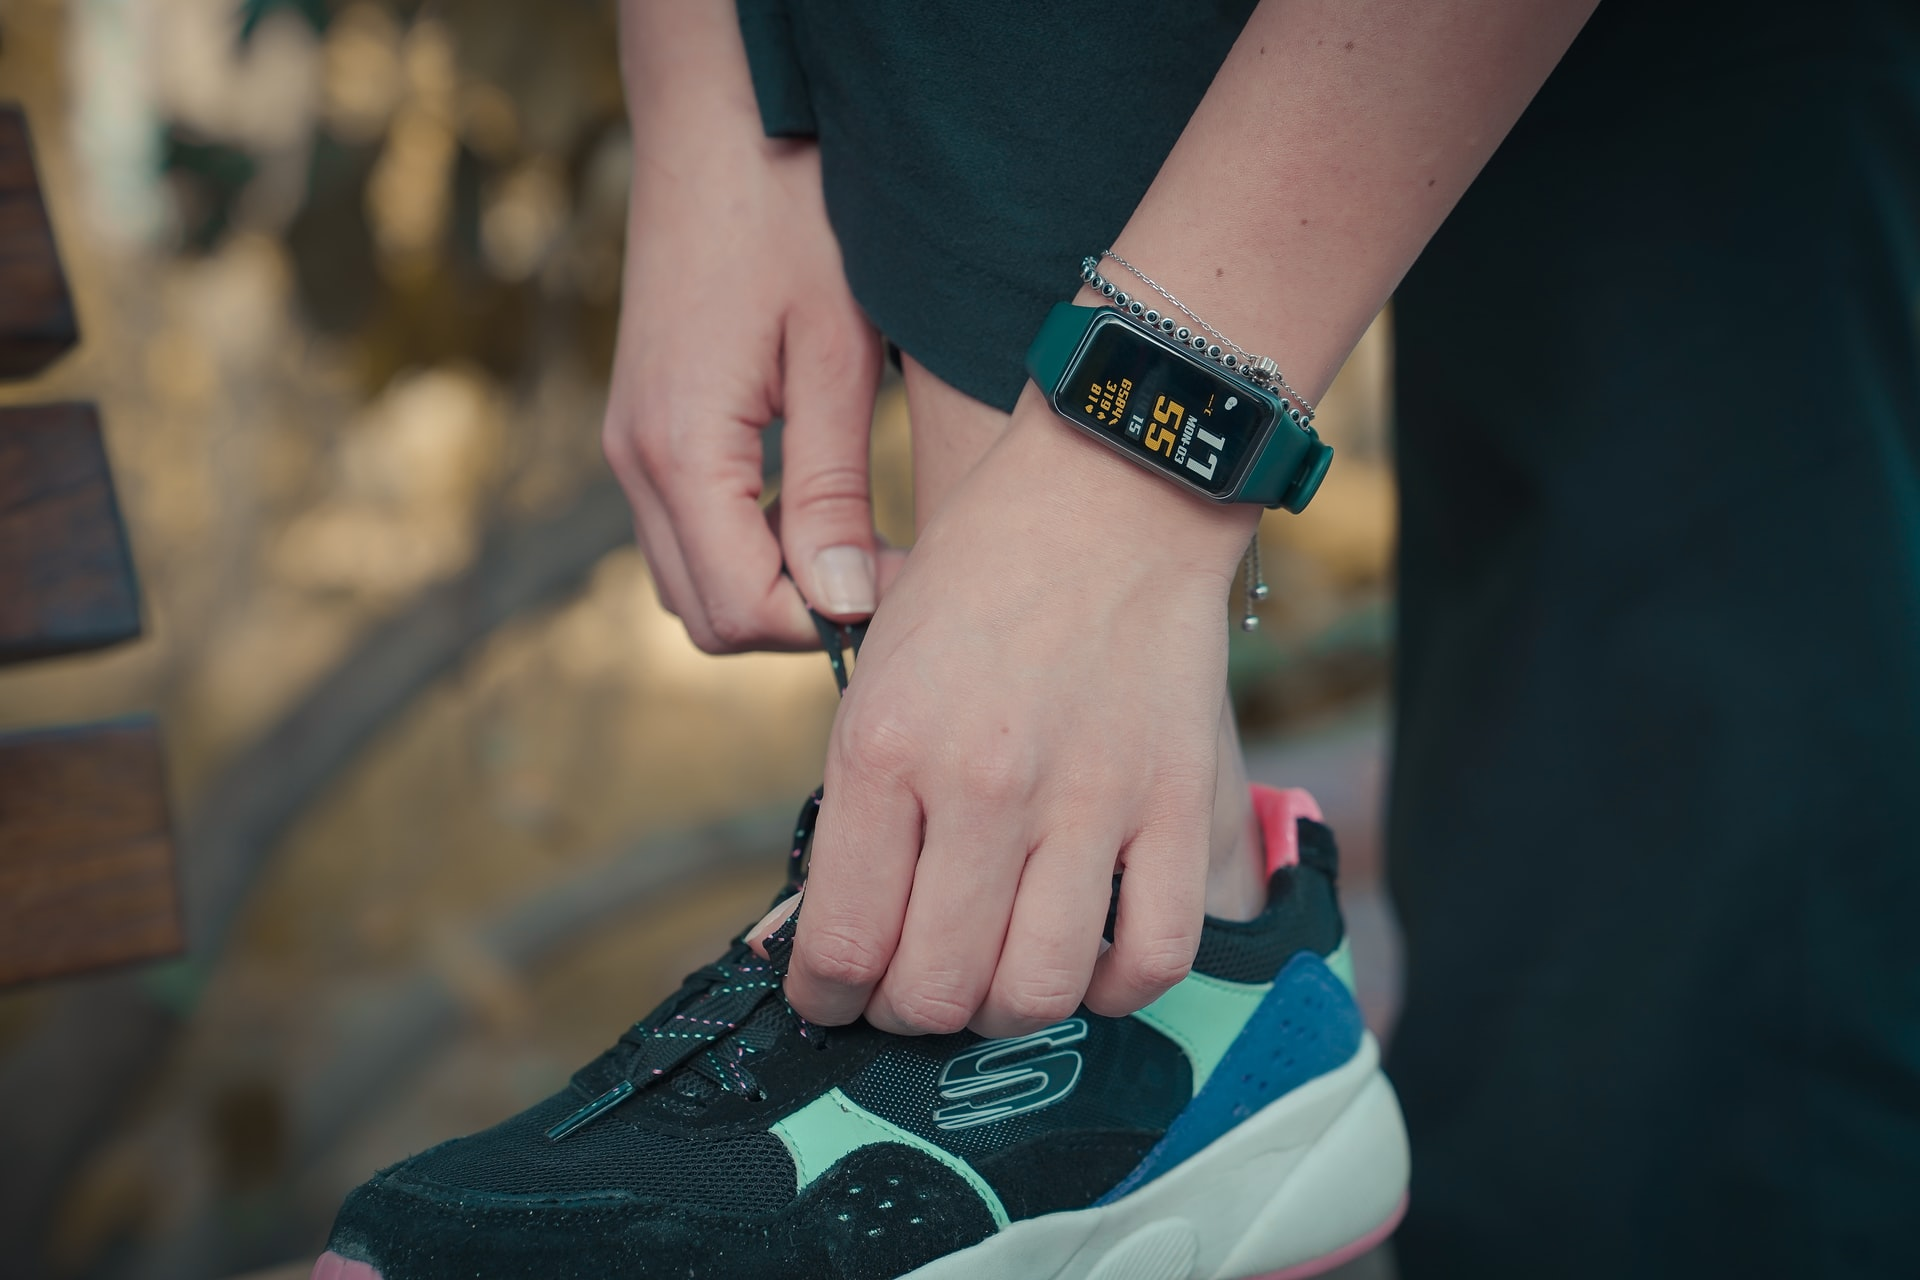 Fitness watch for running